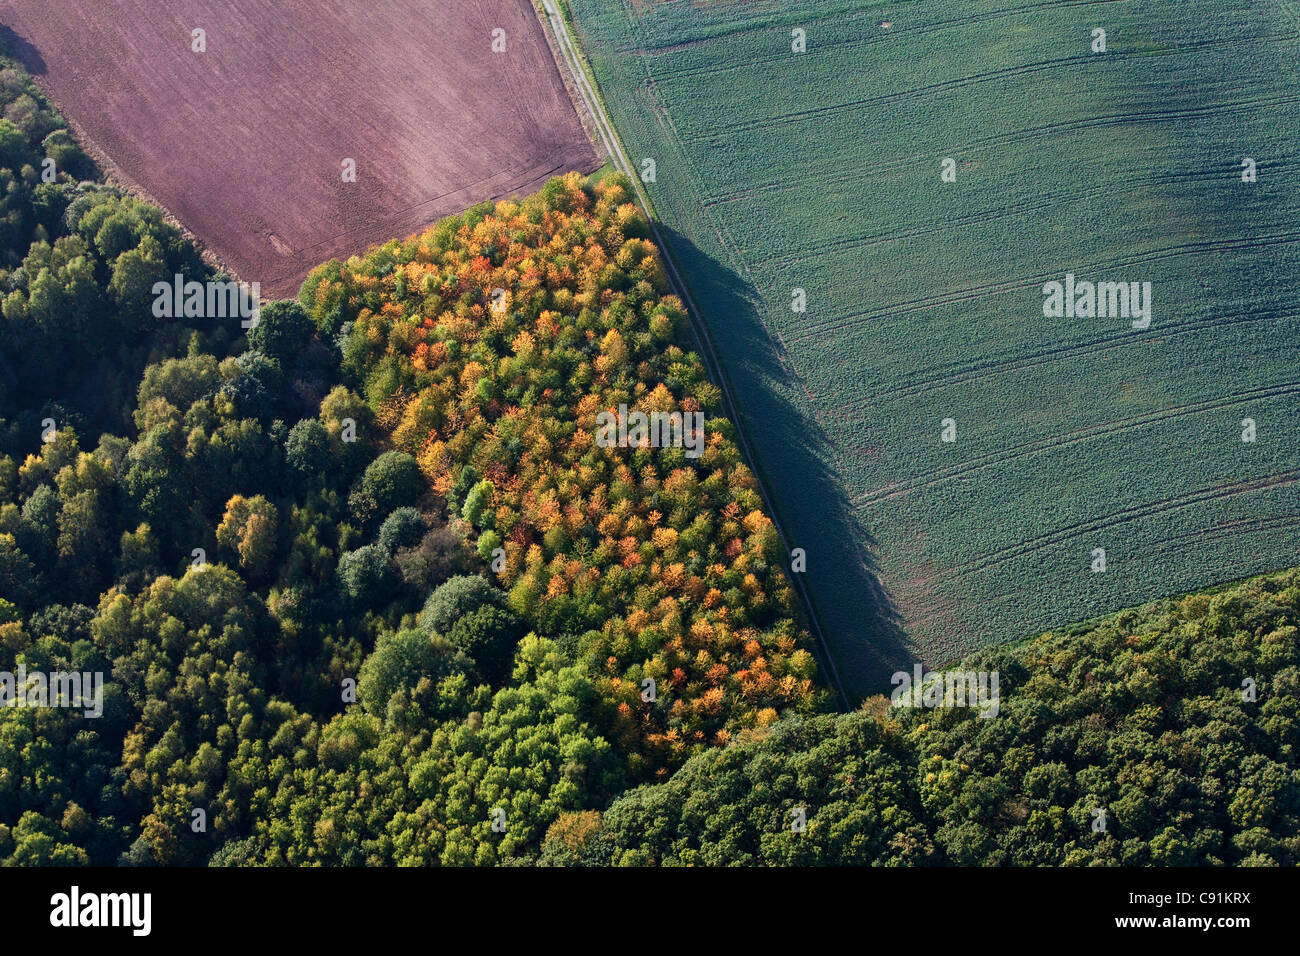 Aerial photo of diverse land useage, agricultural forest and fields, Lower Saxony, Germany - Stock Image